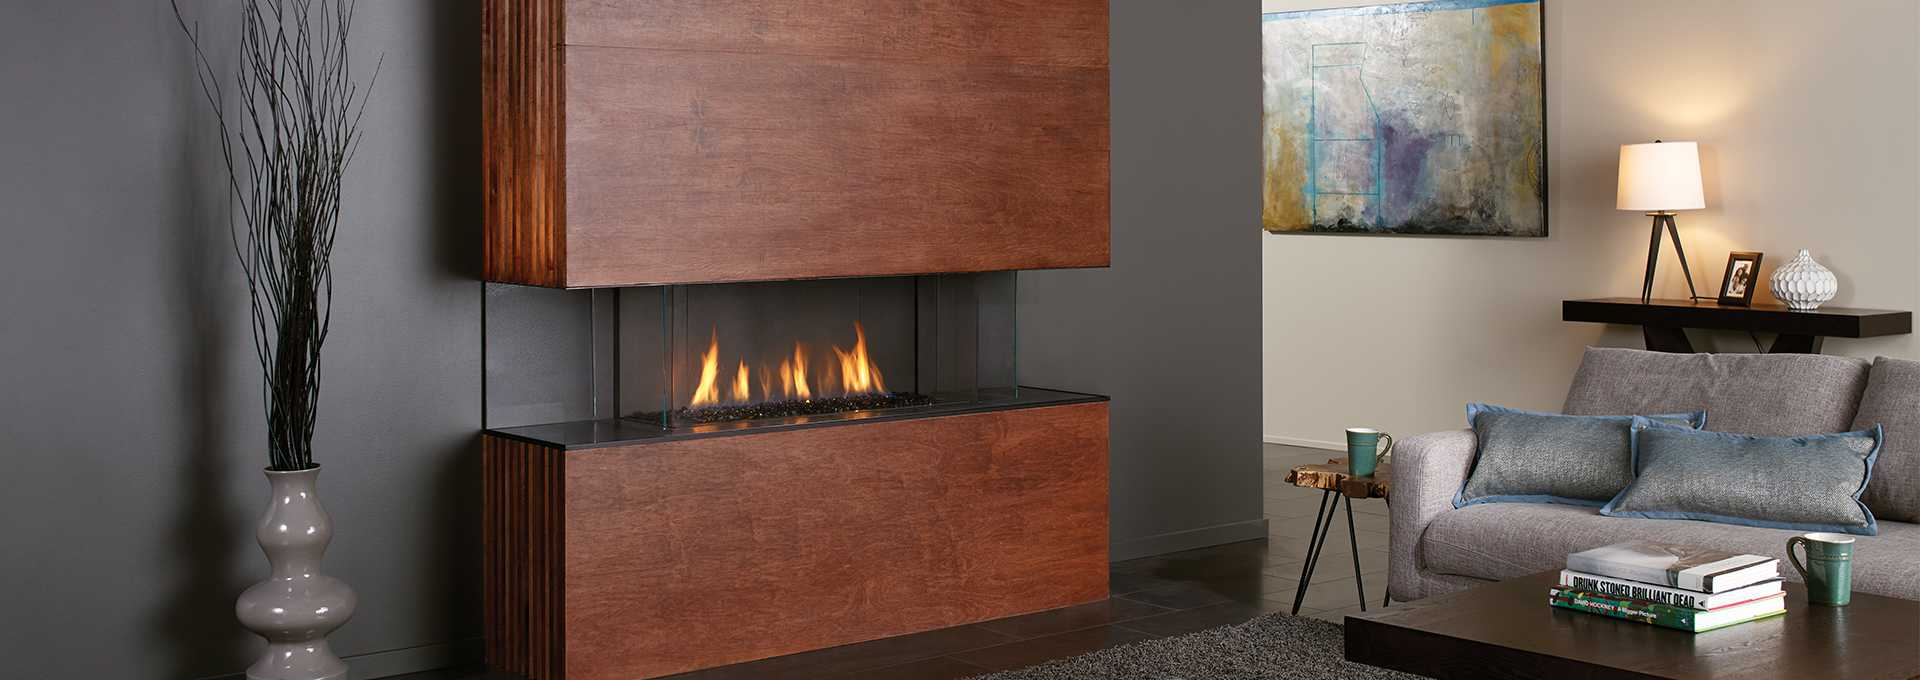 Revolutionary New City Series Fireplaces Make It Possible To Finish Your Fireplace In Flammable Materials Like Wallpaper Wood